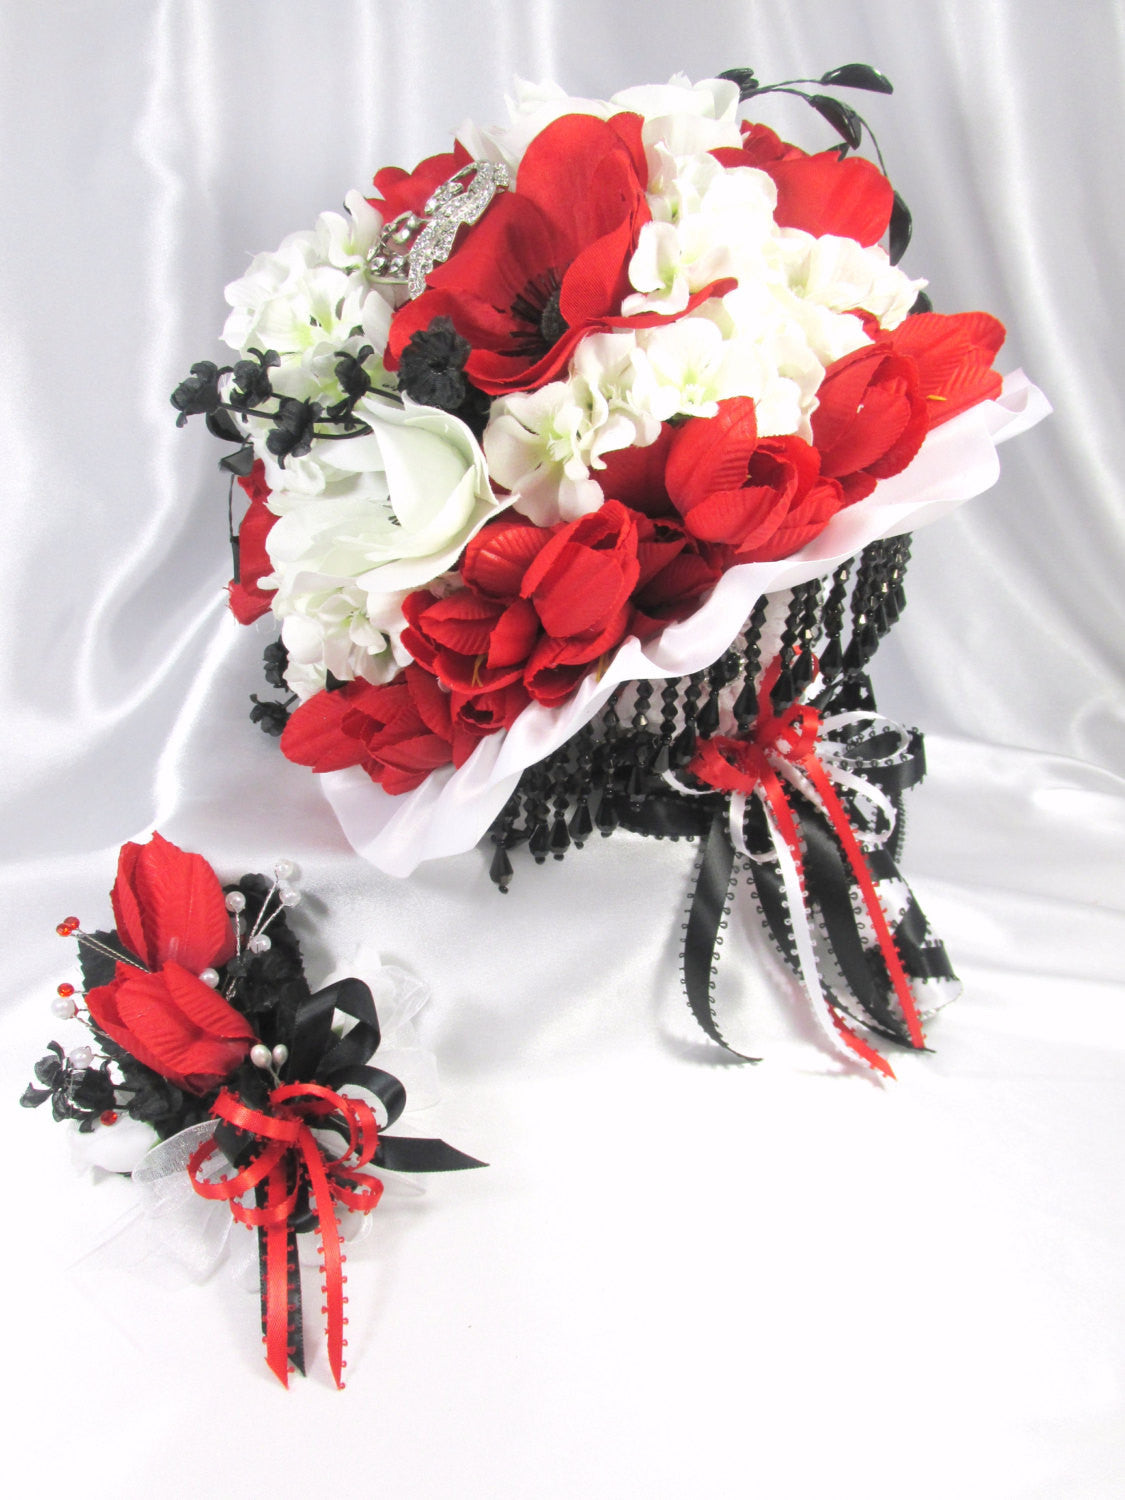 Red, White and Black Poppies Victorian Styled Traditional Beaded Bridal Brooch Bouquet - Odyssey Creations